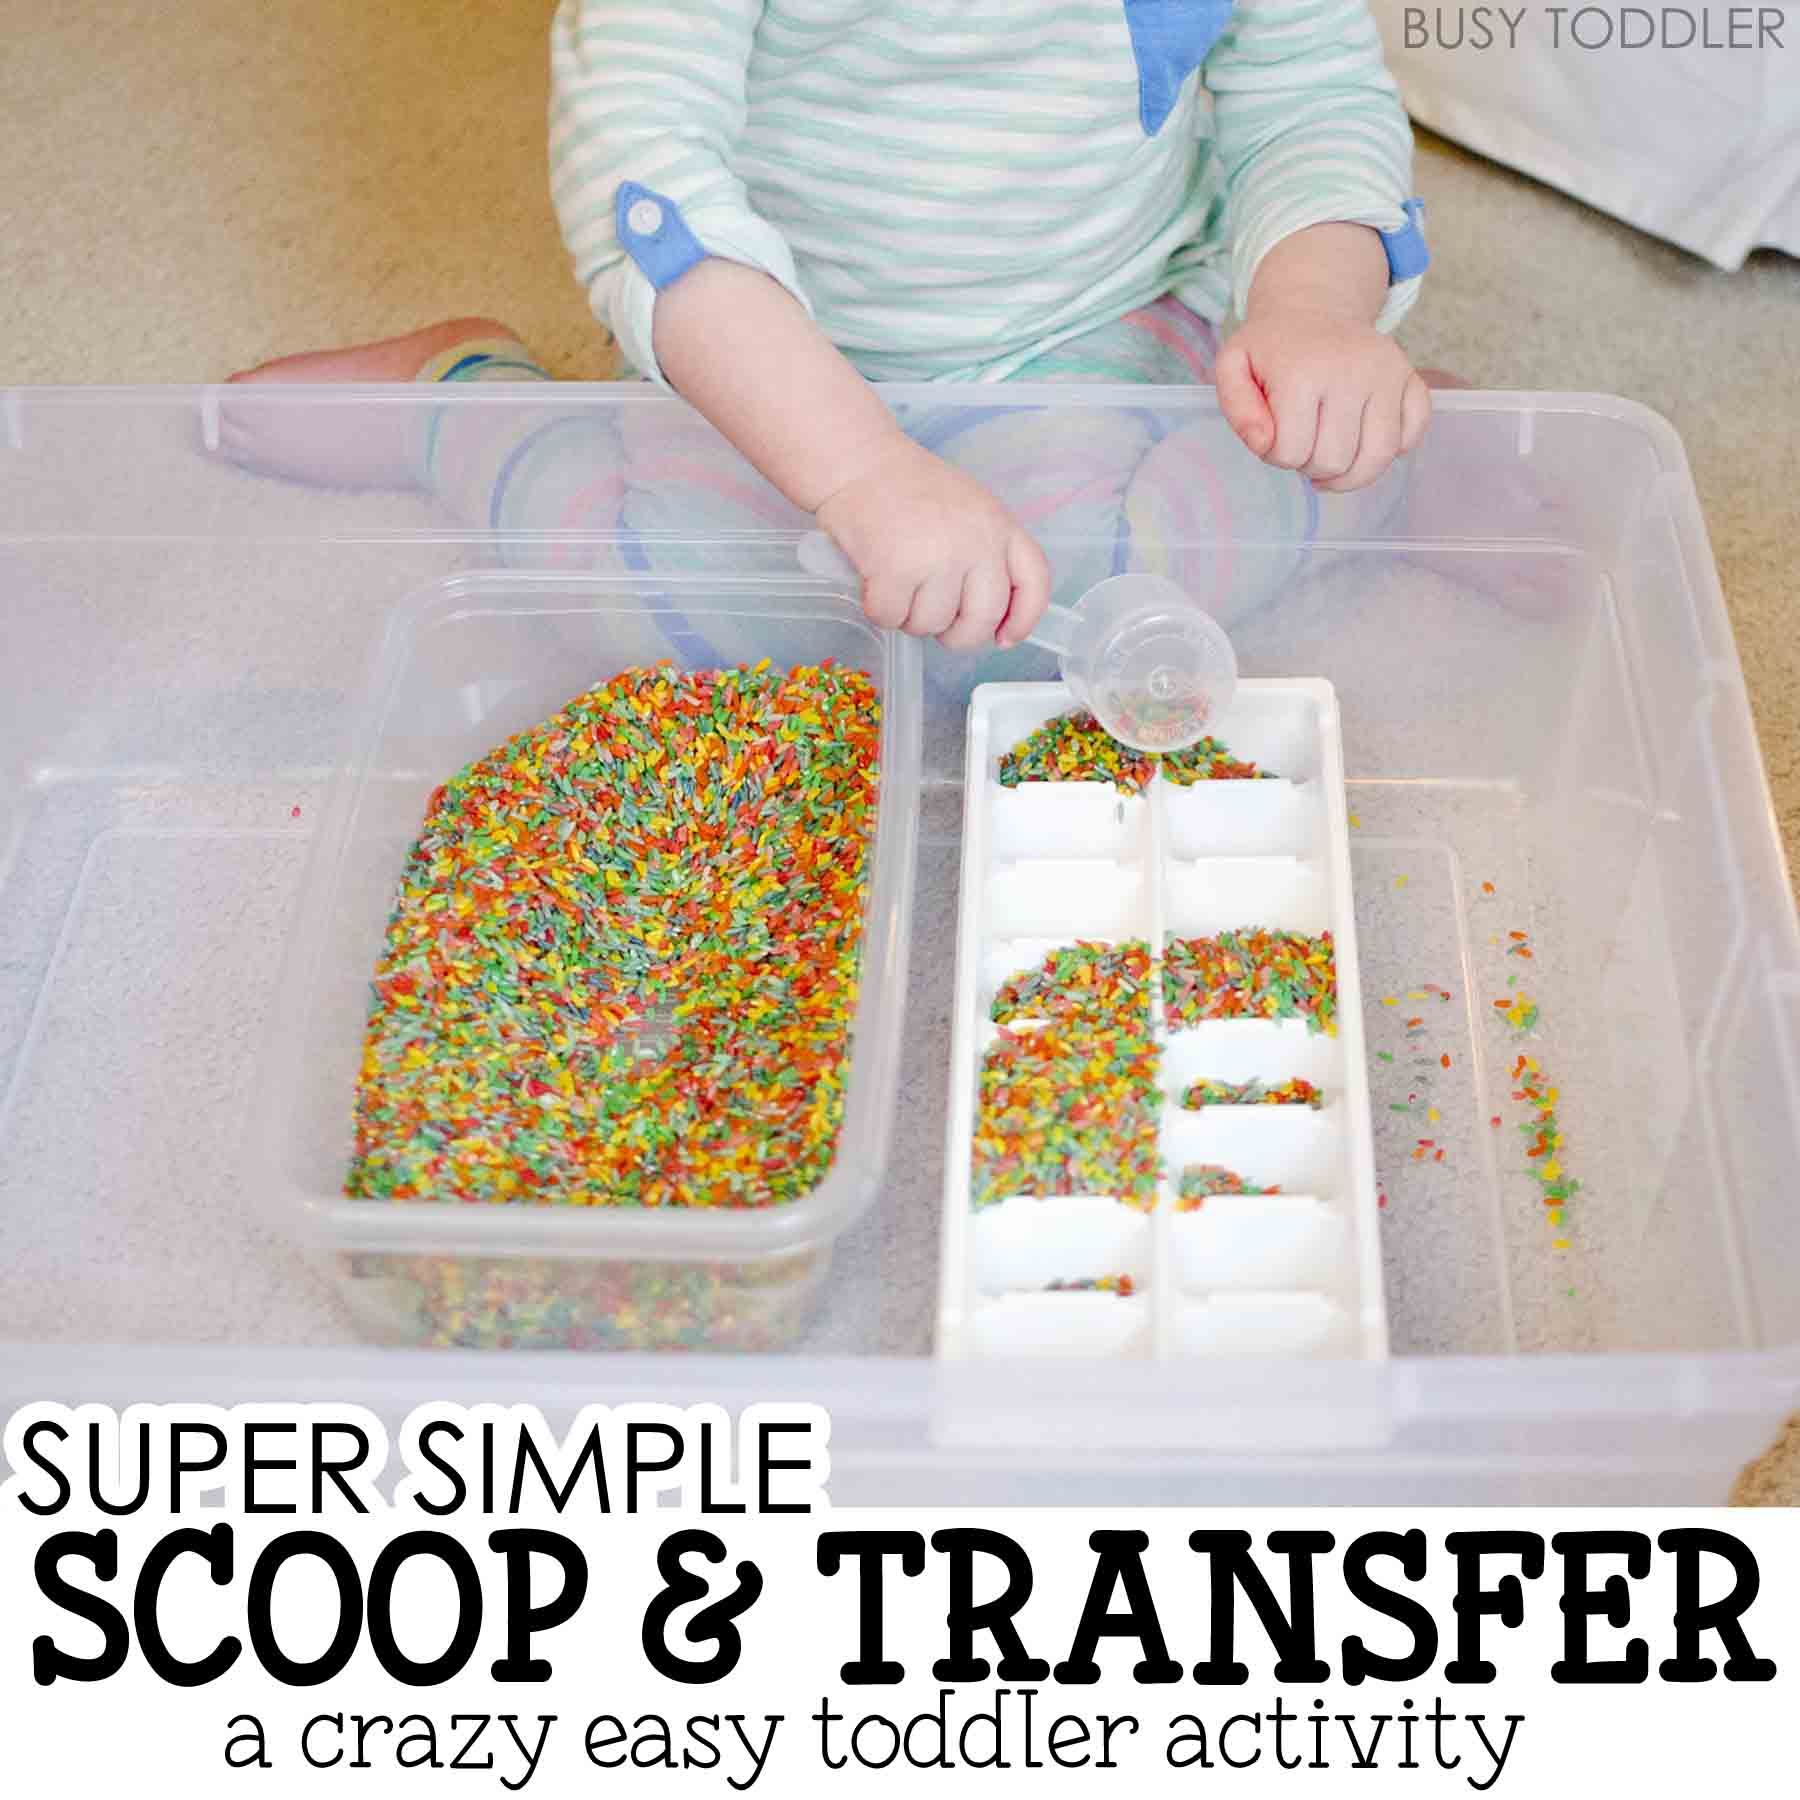 Check out this super simple rice scoop and transfer activity from Busy Toddler! This quick and easy toddler activity is perfect for life skills practice; easy toddler activity; lifeskills activity